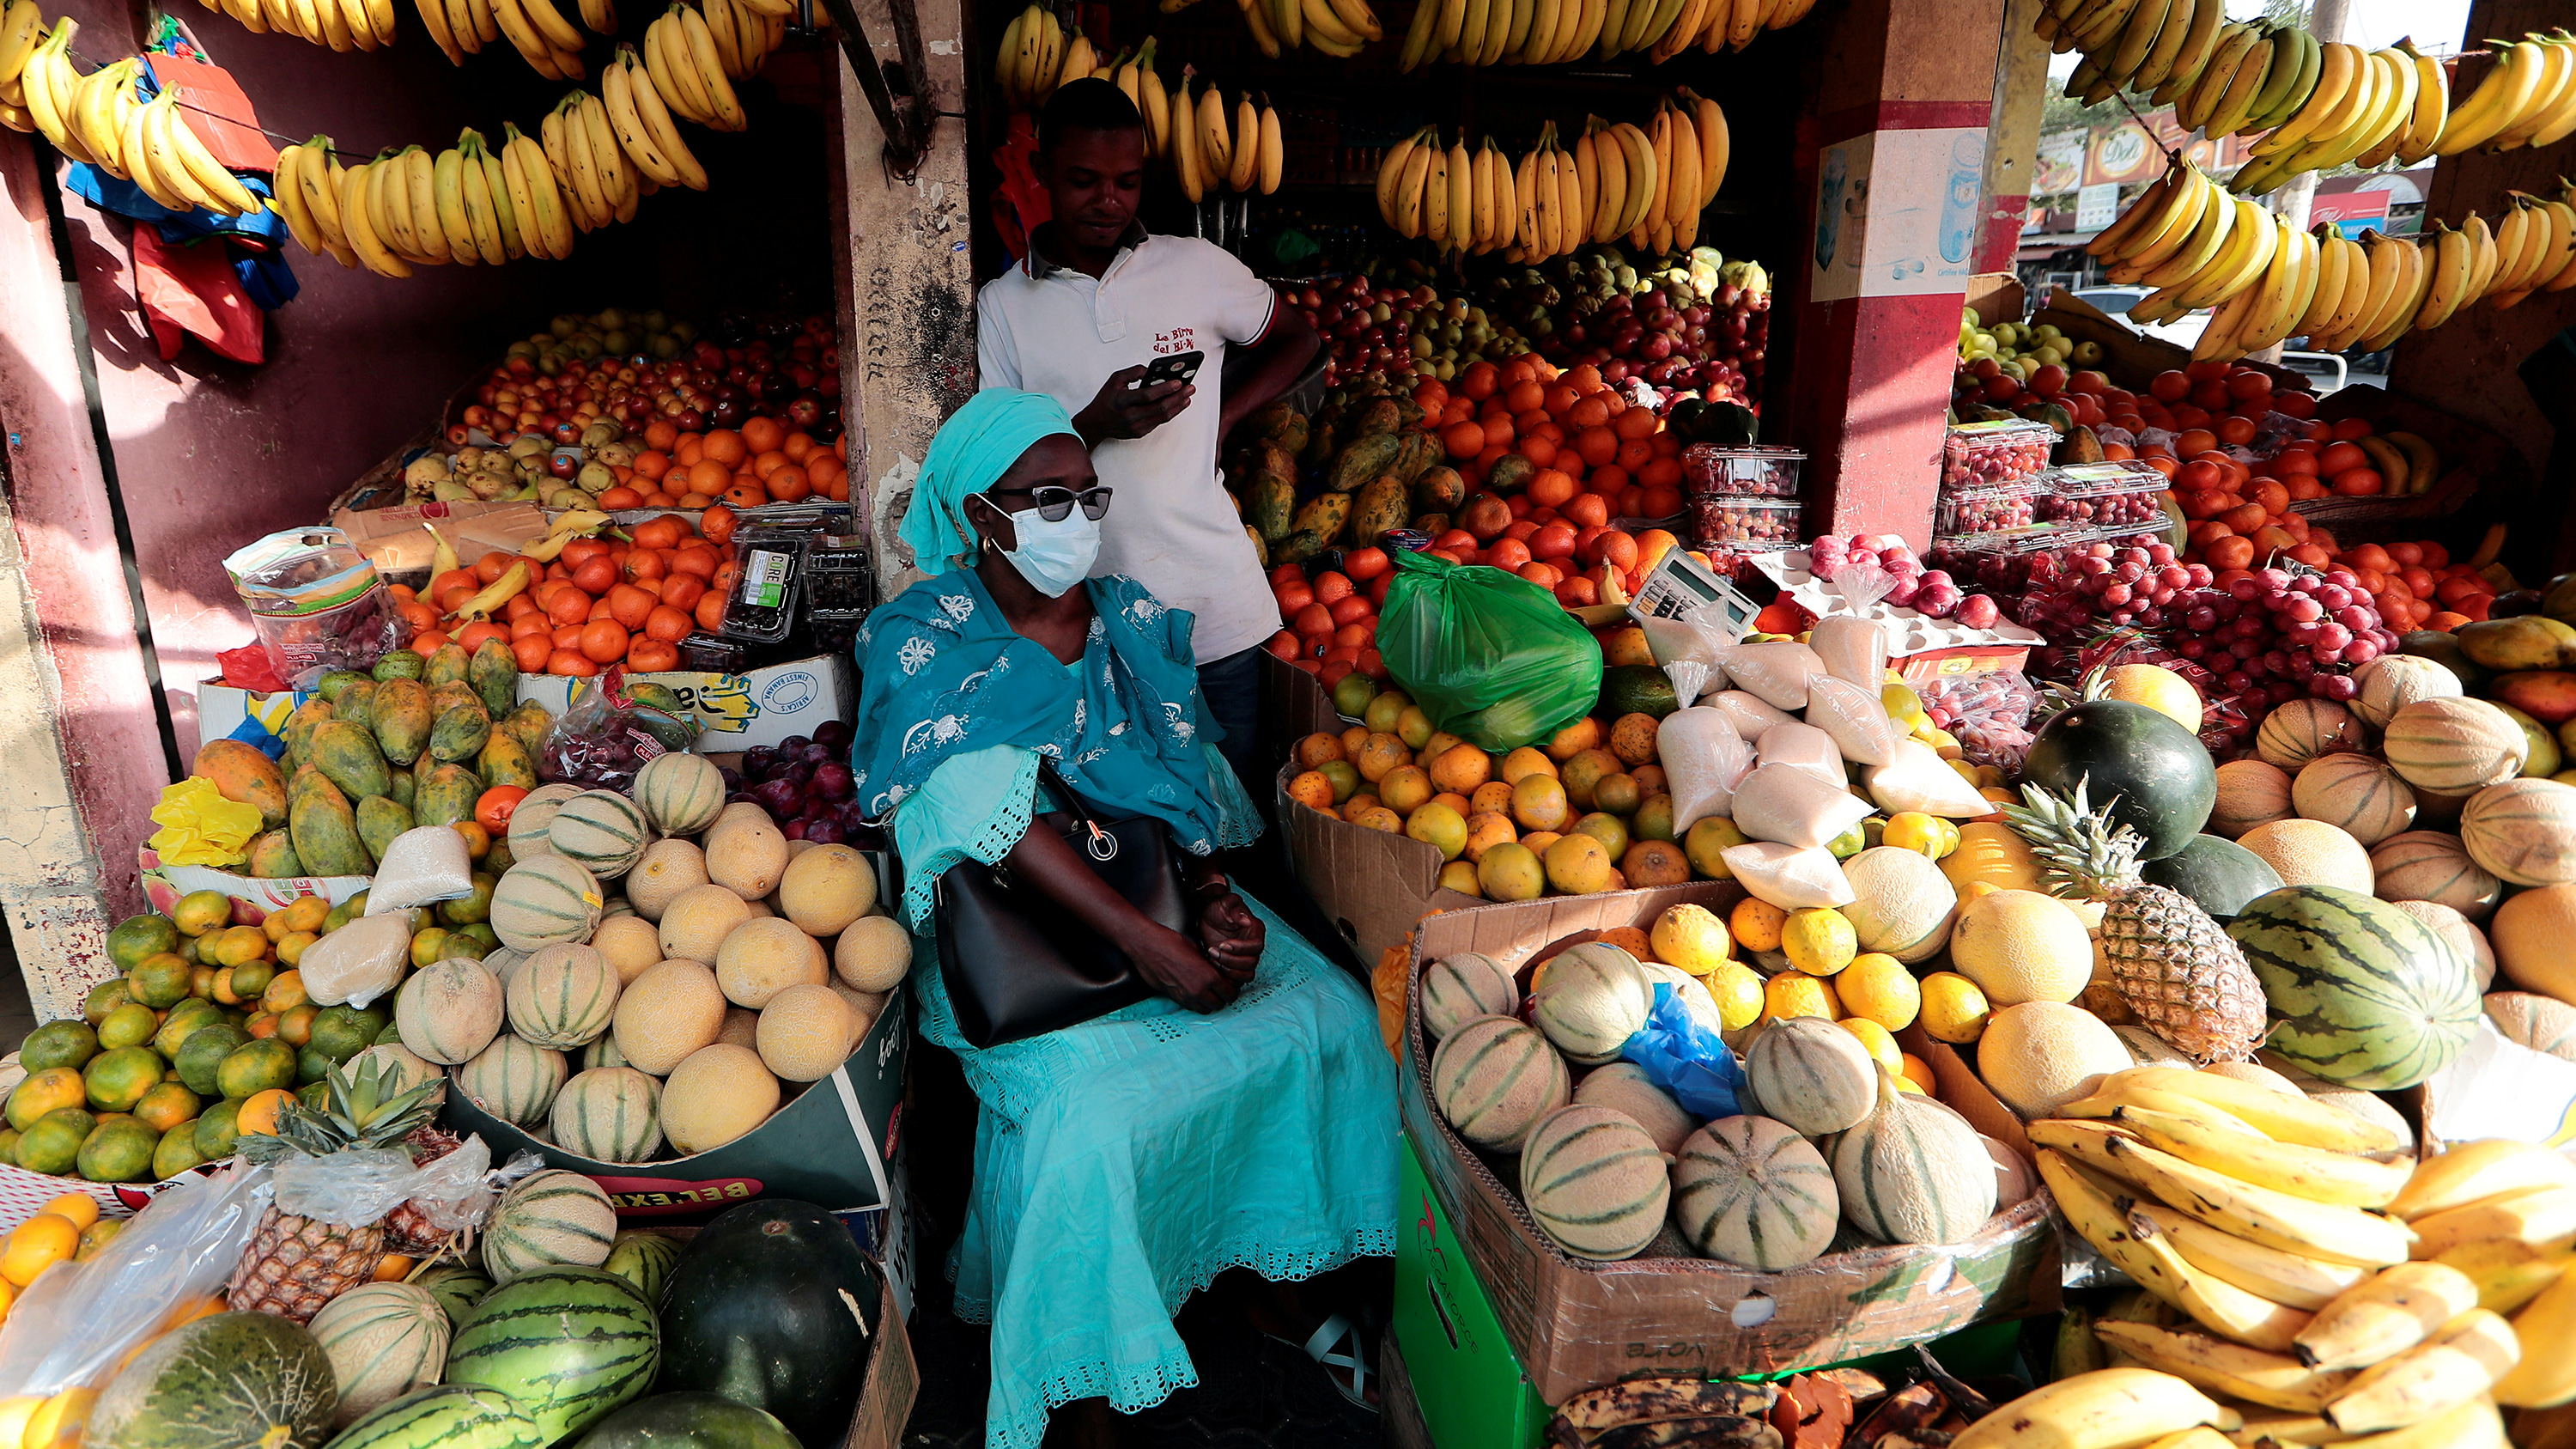 The photo shows a woman wearing a mask sitting amid an abundance of fruit in a tiny stand.